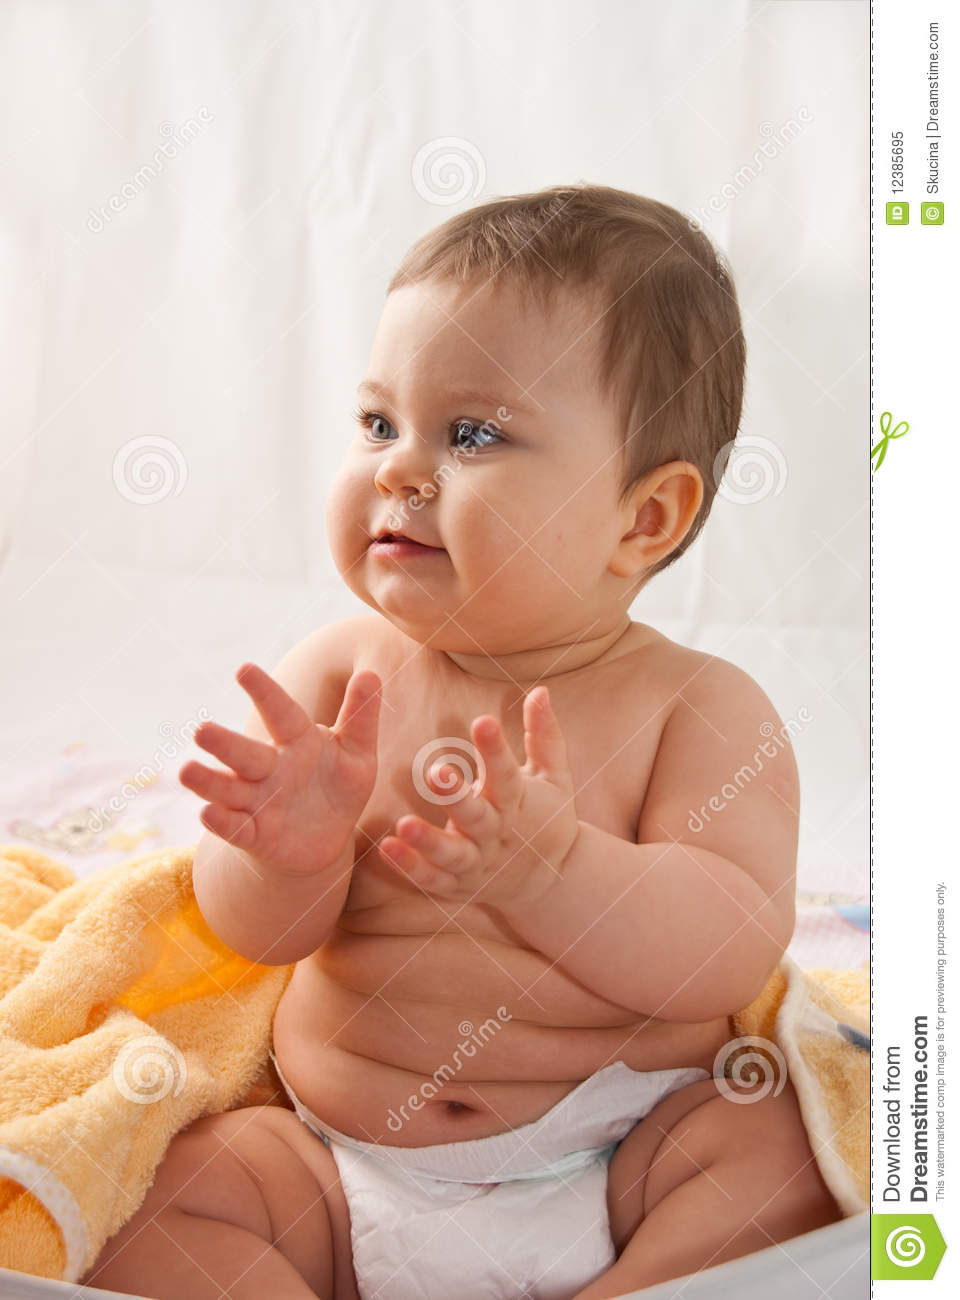 Clapping baby stock image. Image of bath, baby, toddler ...